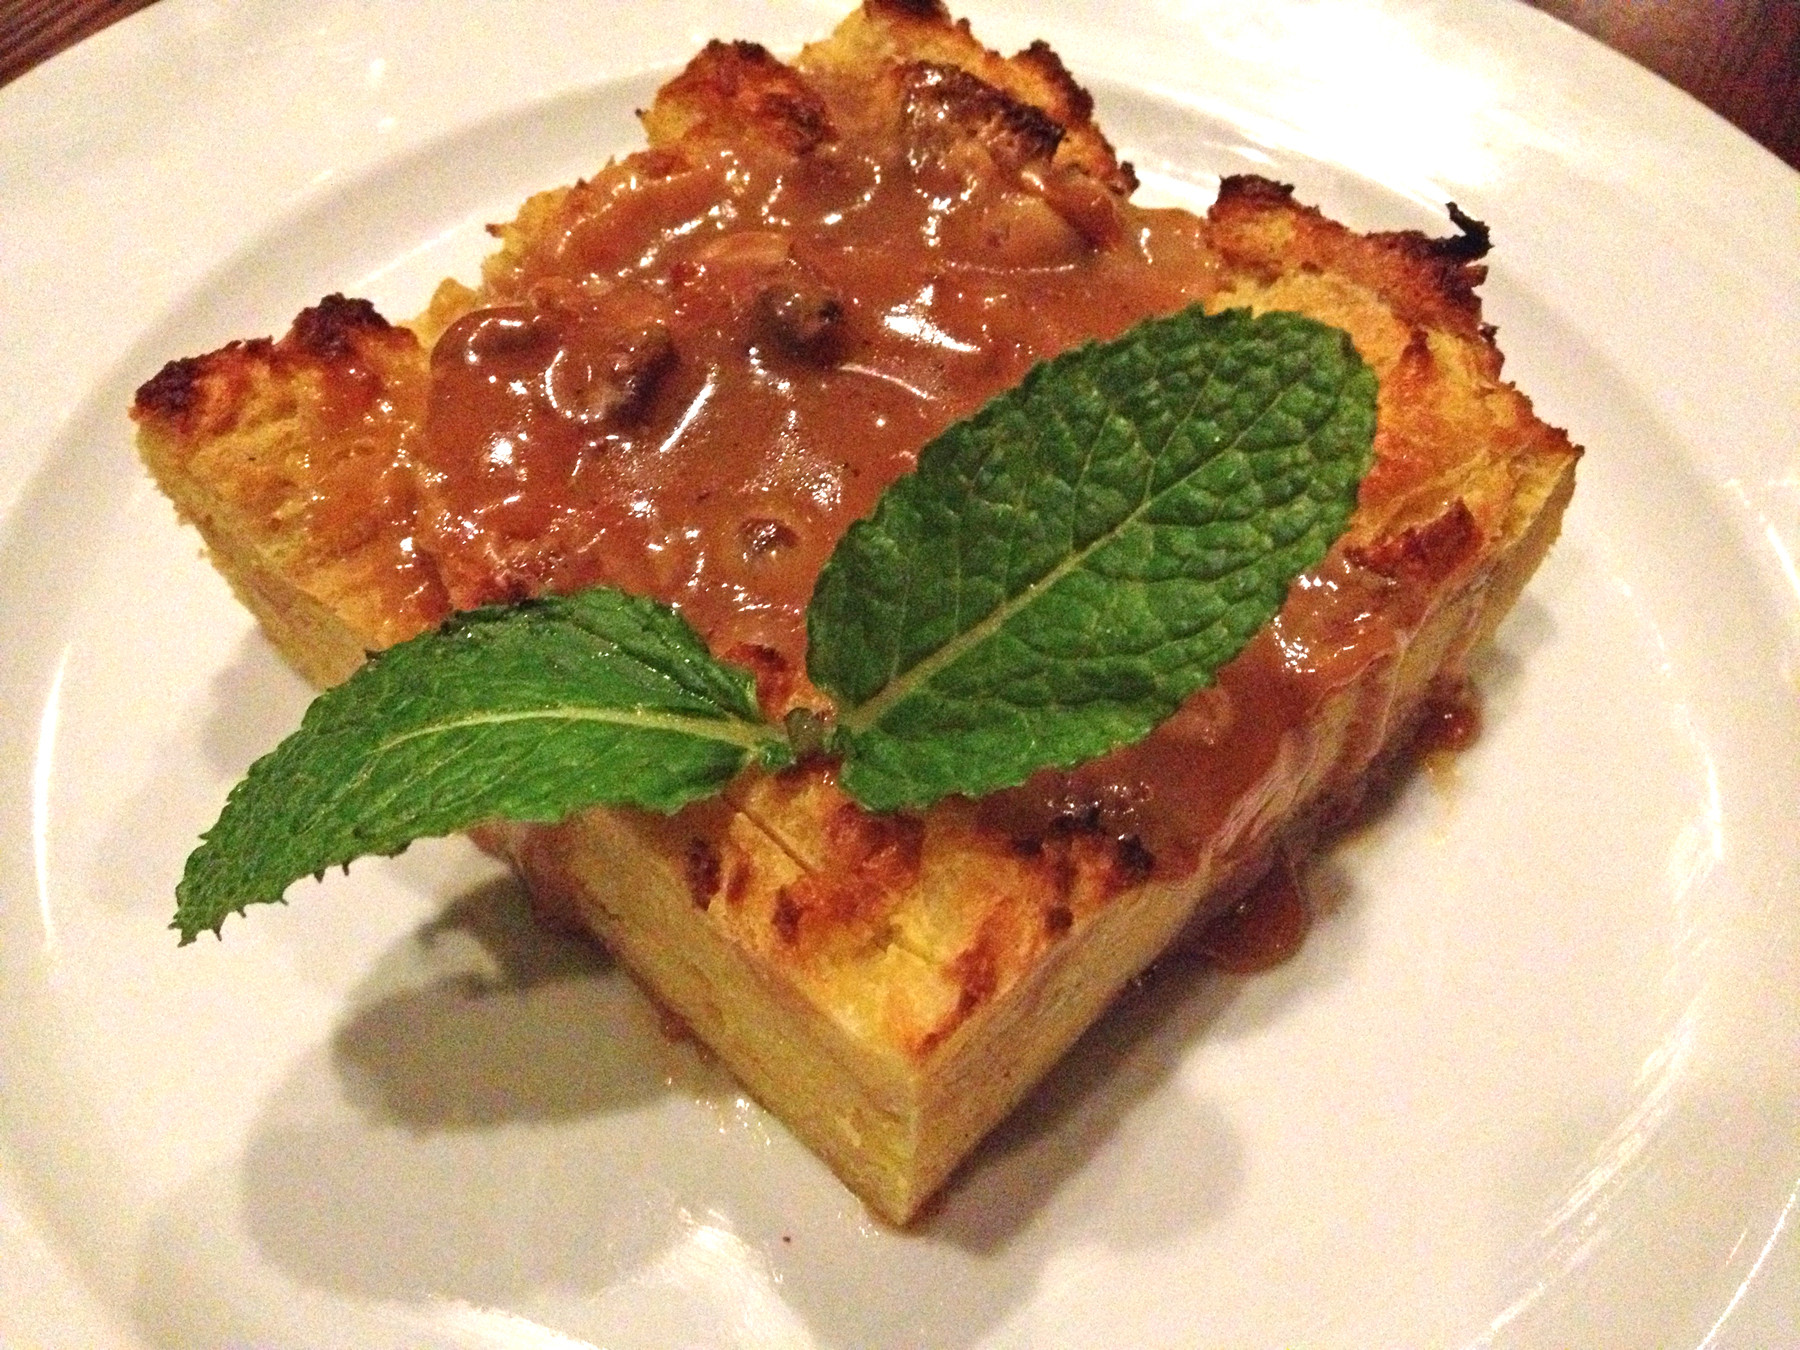 Bread pudding, with a buttery caramel sauce, is solid.